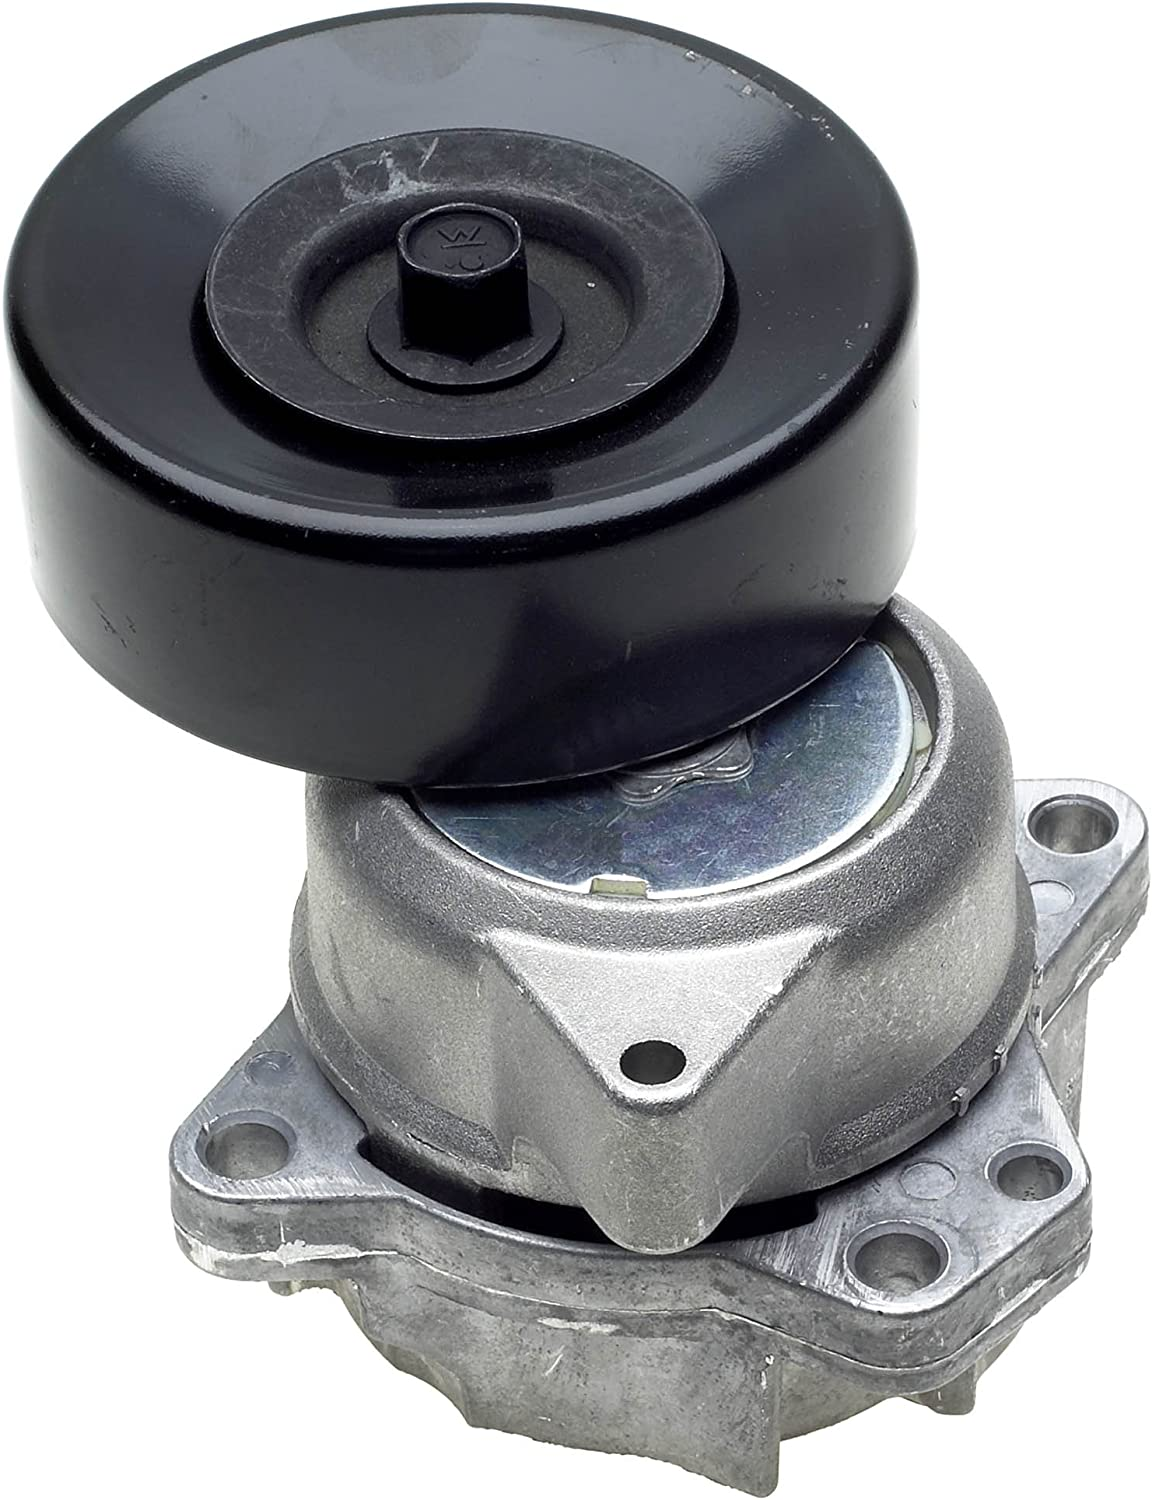 ACDelco 38190 Professional Automatic Belt Tensioner and Pulley Assembly